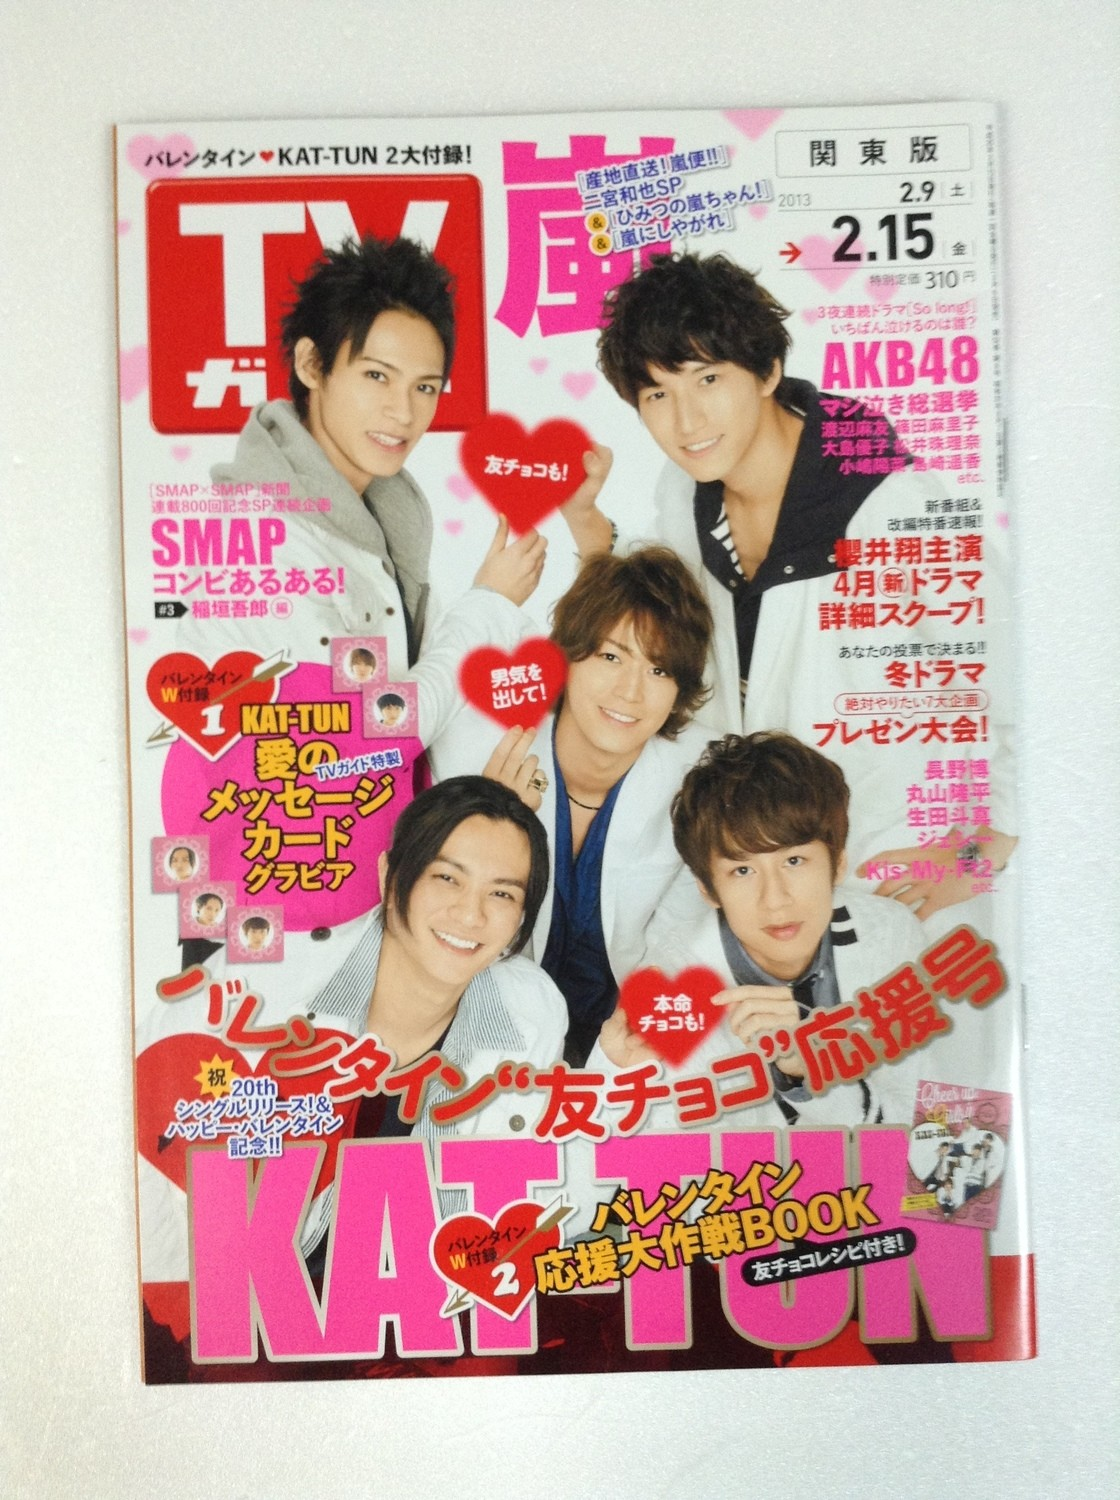 TV Guide Magazine Febuary 2013 featuring KAT-TUN